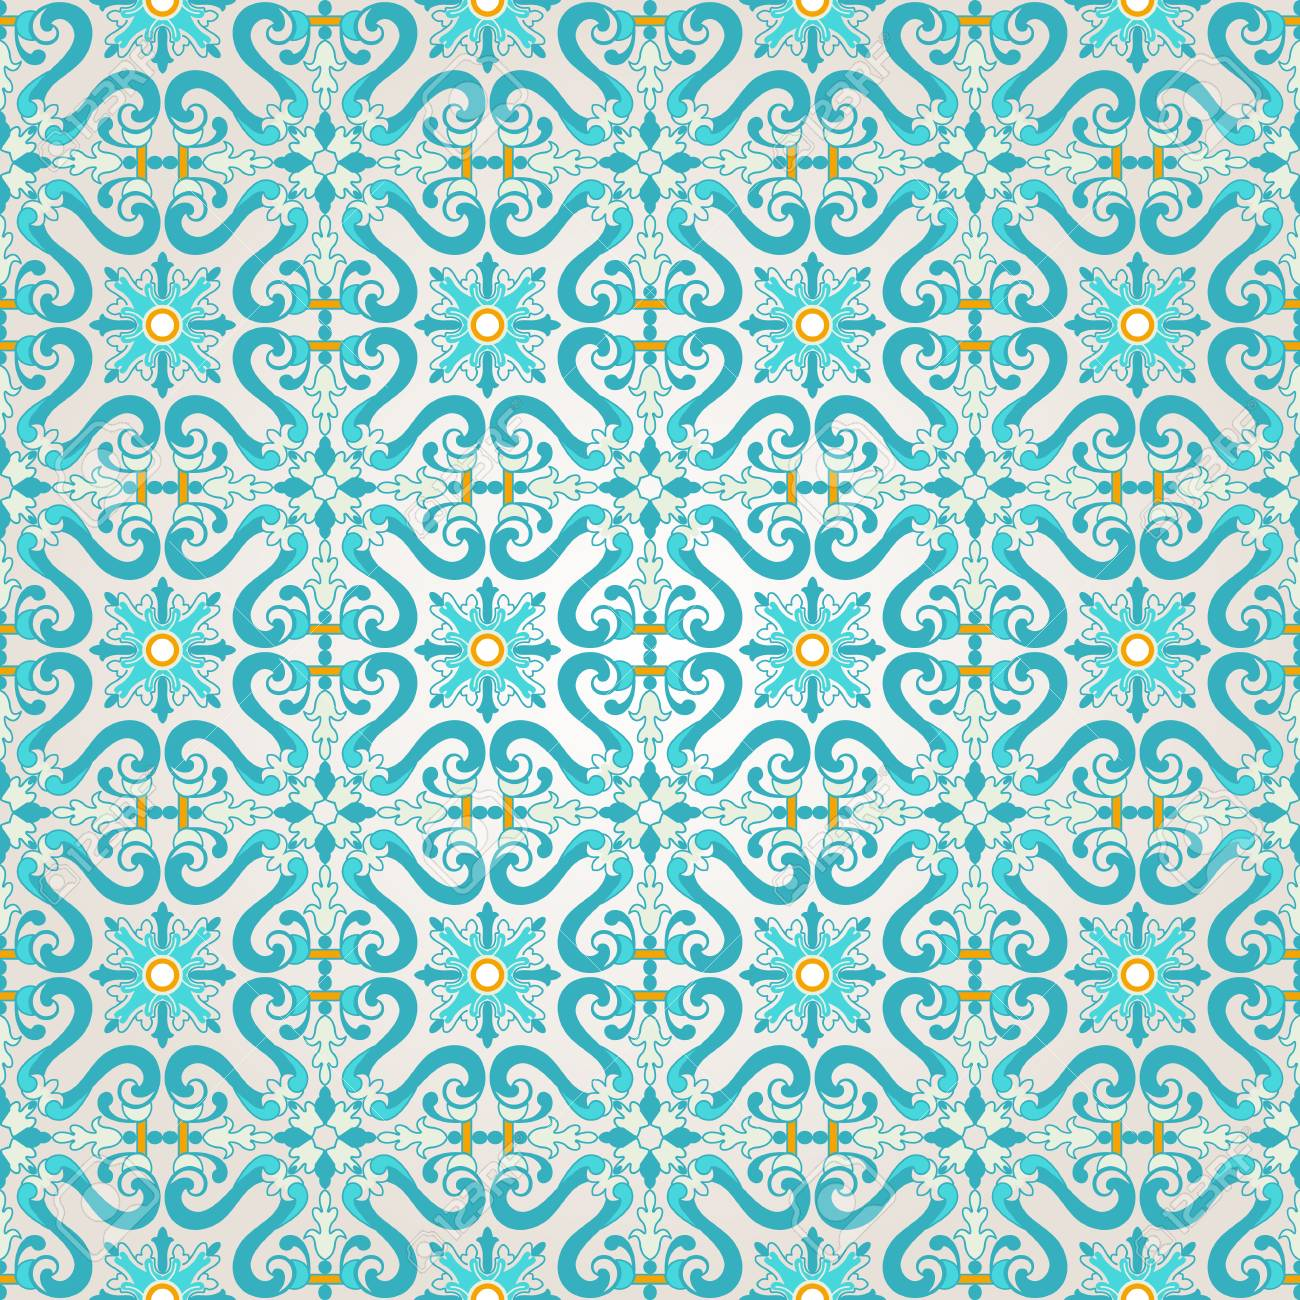 Background vintage flower. Seamless floral pattern. Abstract wallpaper. - 29382182